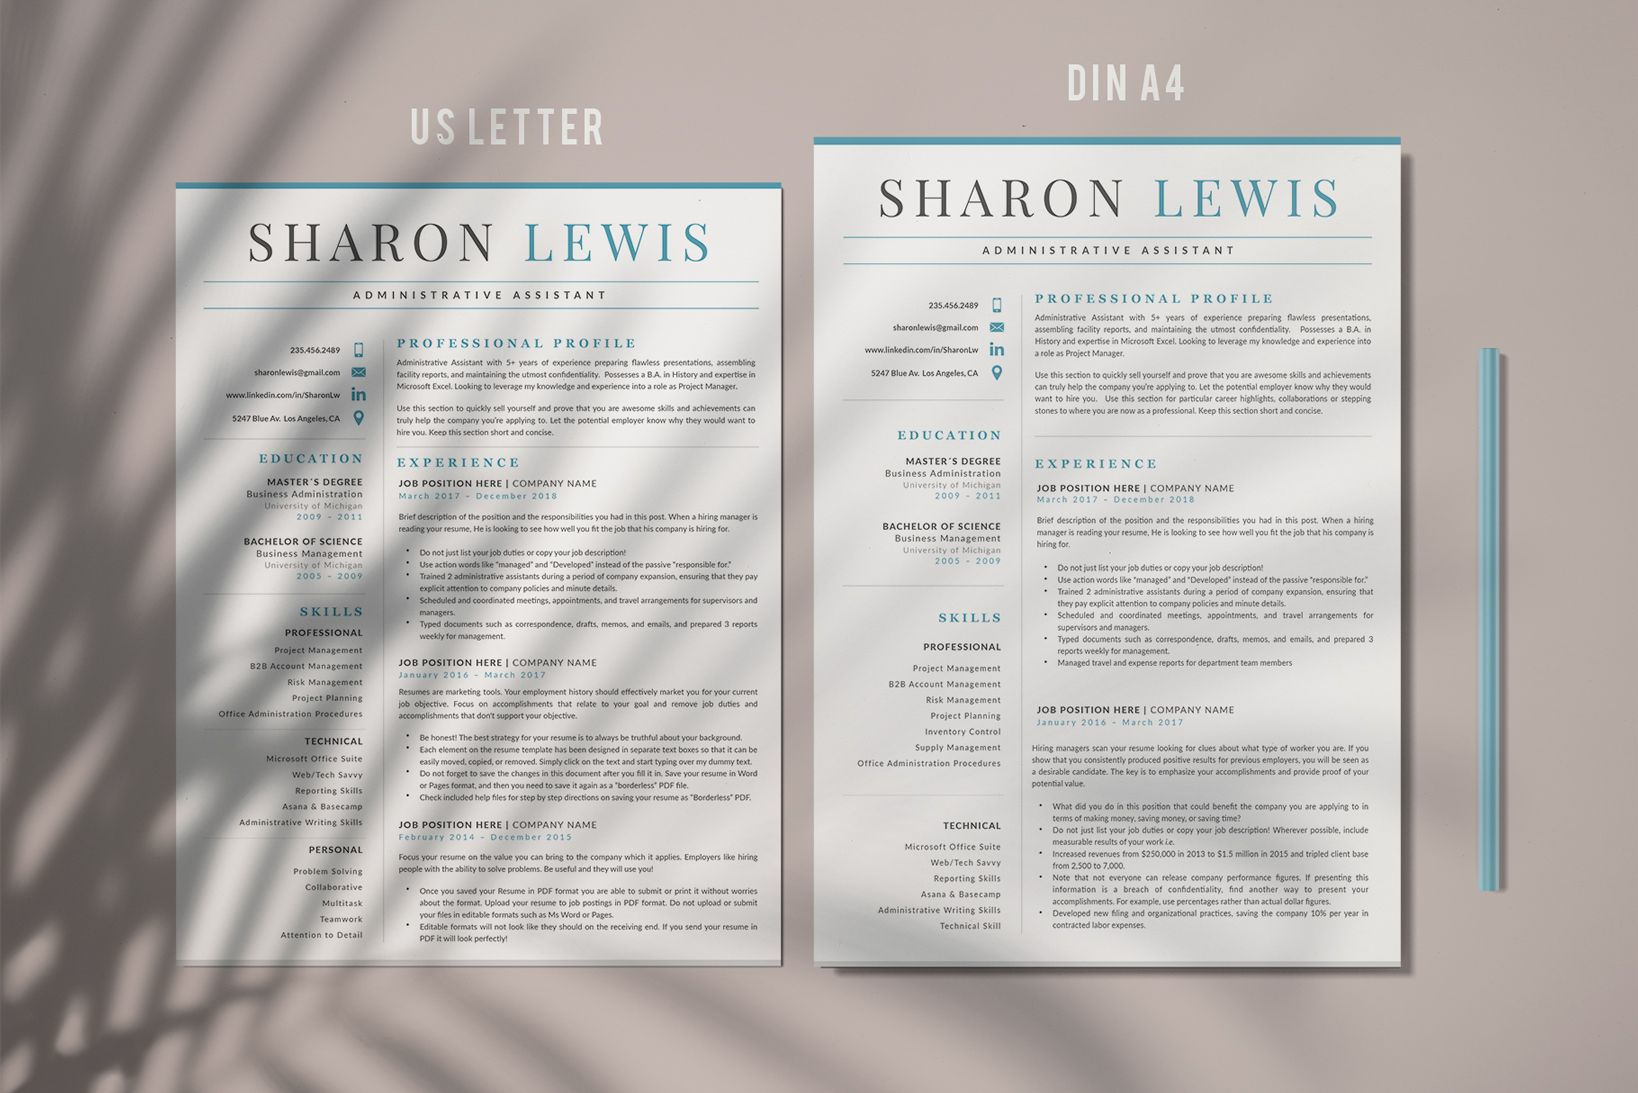 46+ Action verbs for resume customer service Resume Examples